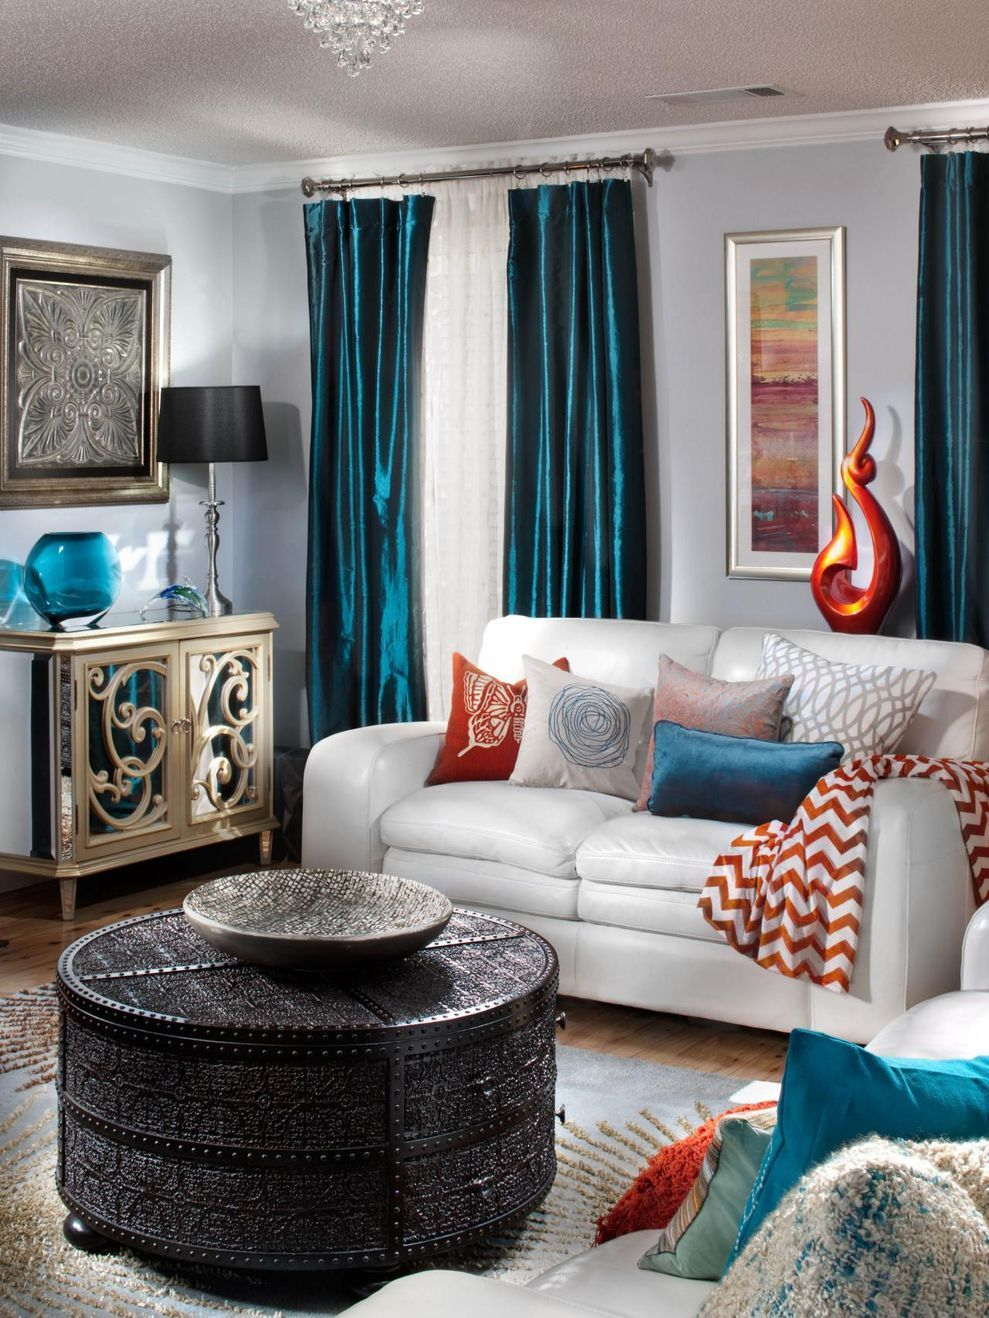 Pin On Decor Living Room #turquoise #and #brown #living #room #ideas